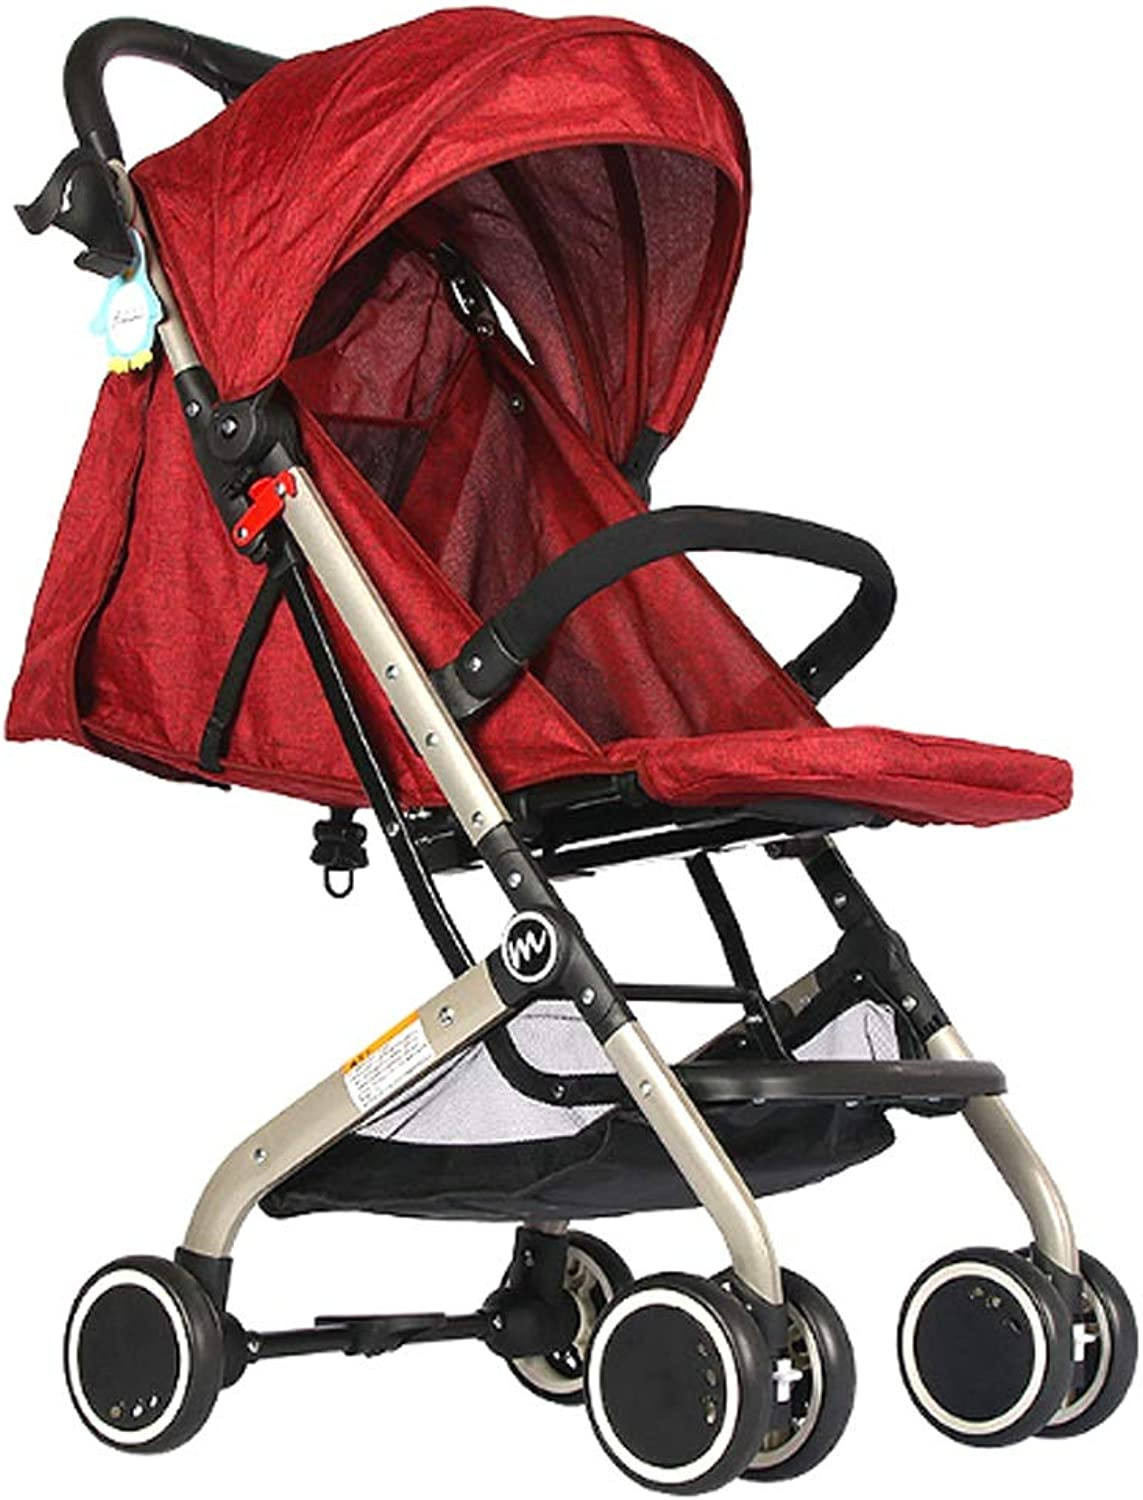 Xiao ping Strollers Lightweight And Portable Stroller Pushchair Folds Slim